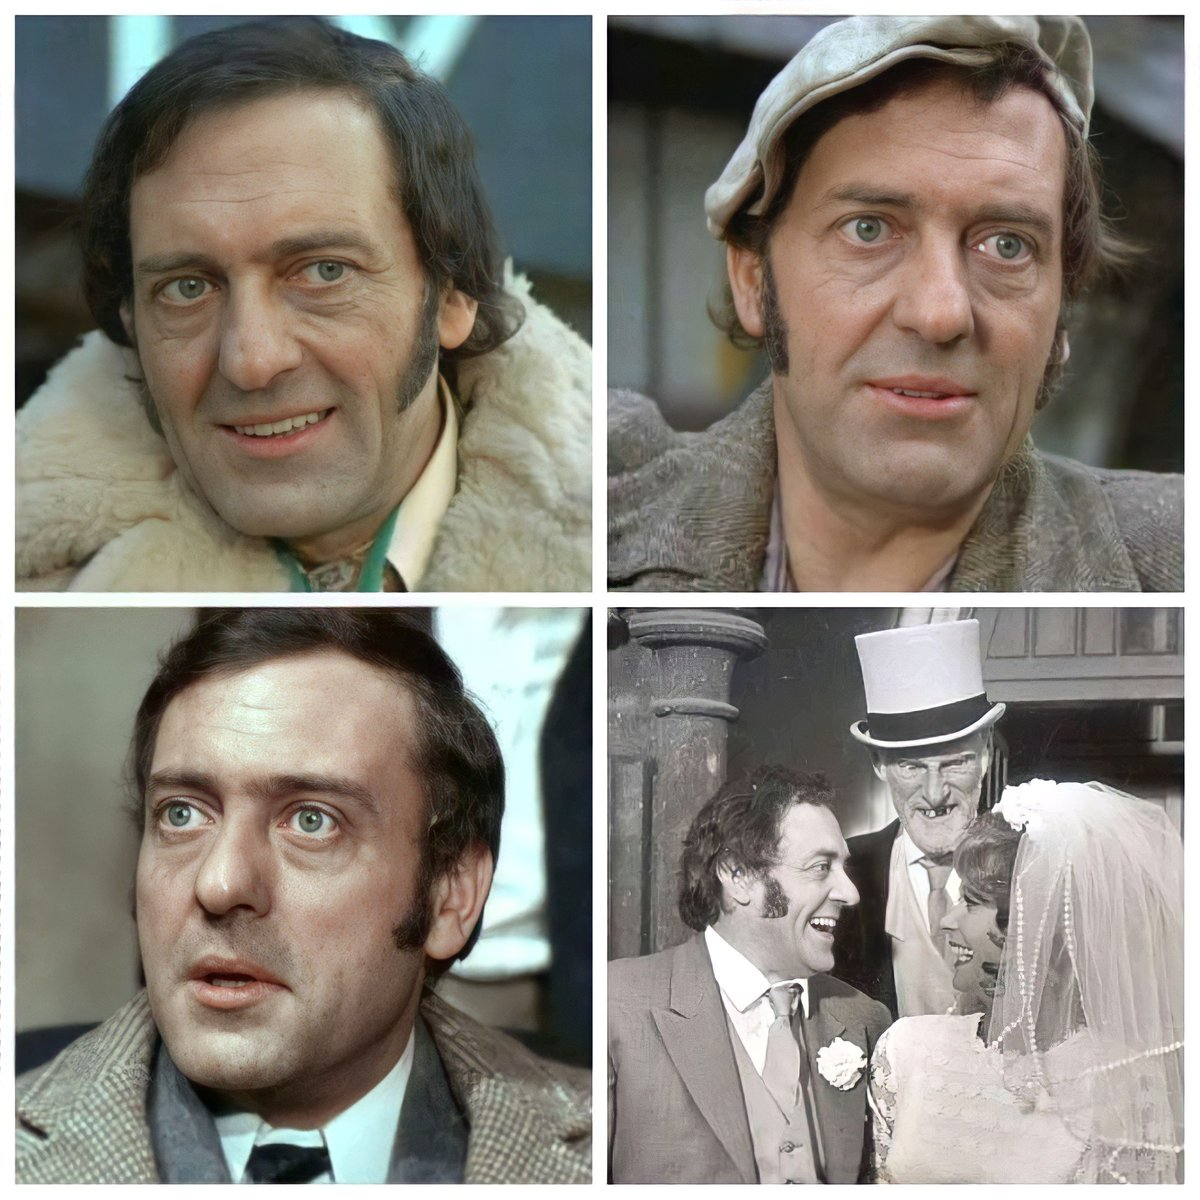 Replying to @Classicbritcom: Remembering the late Actor, Harry H. Corbett (28 February 1925 – 21 March 1982)